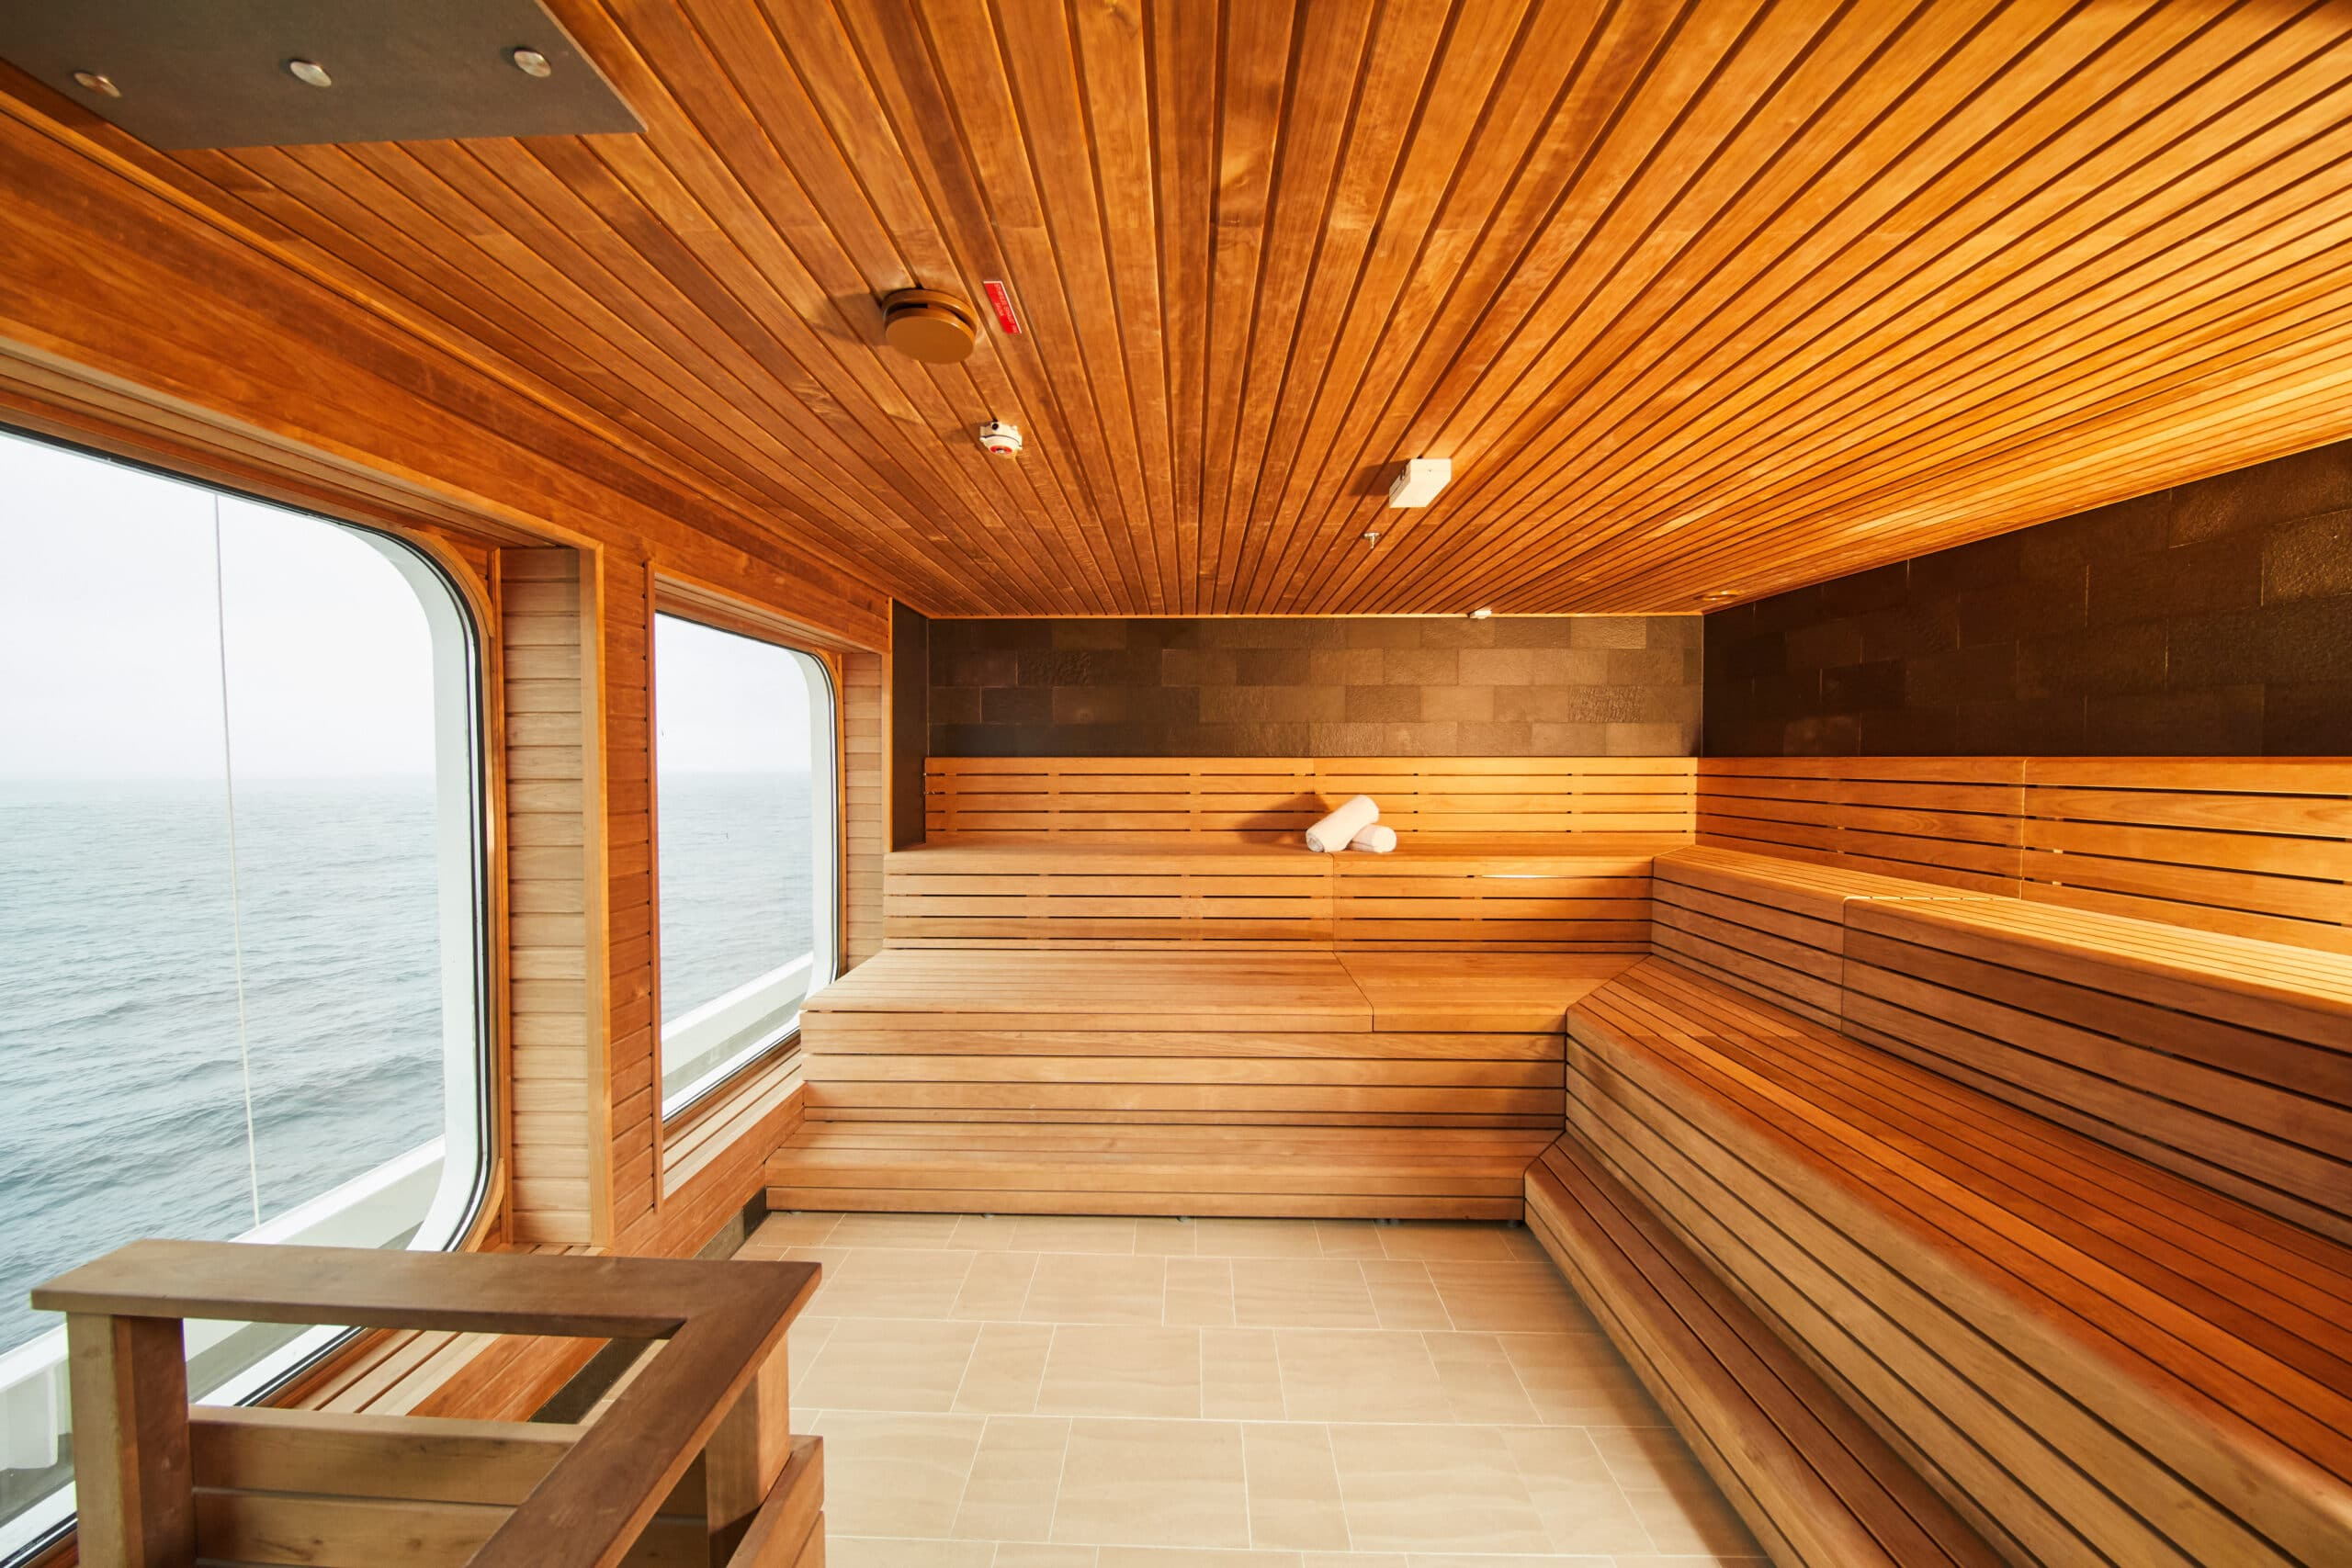 Cruiseschip-Hanseatic Nature-Hapag-Lloyd Cruises-Sauna